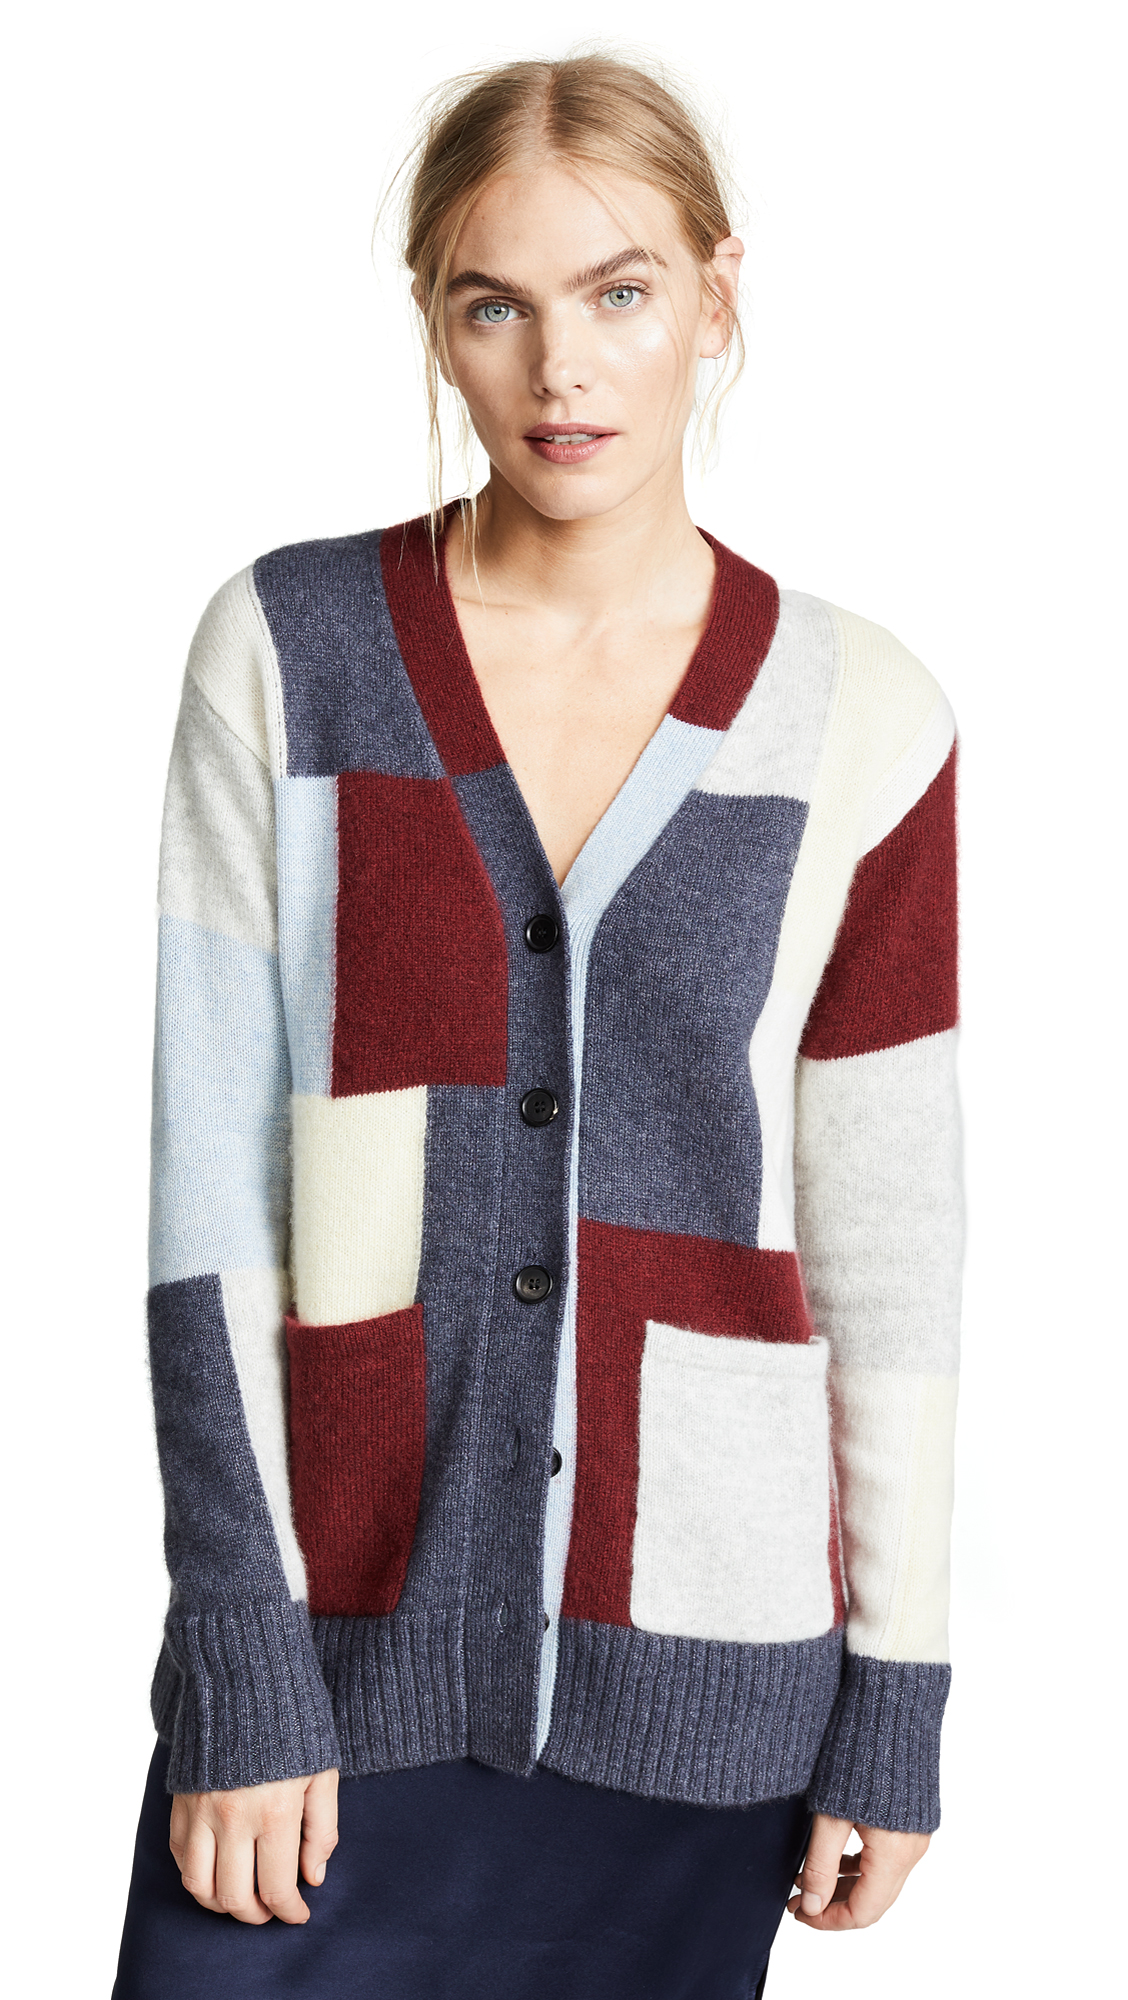 Adam Lippes Brushed Cashmere Knit Patchwork Cardigan In Plaid Multi